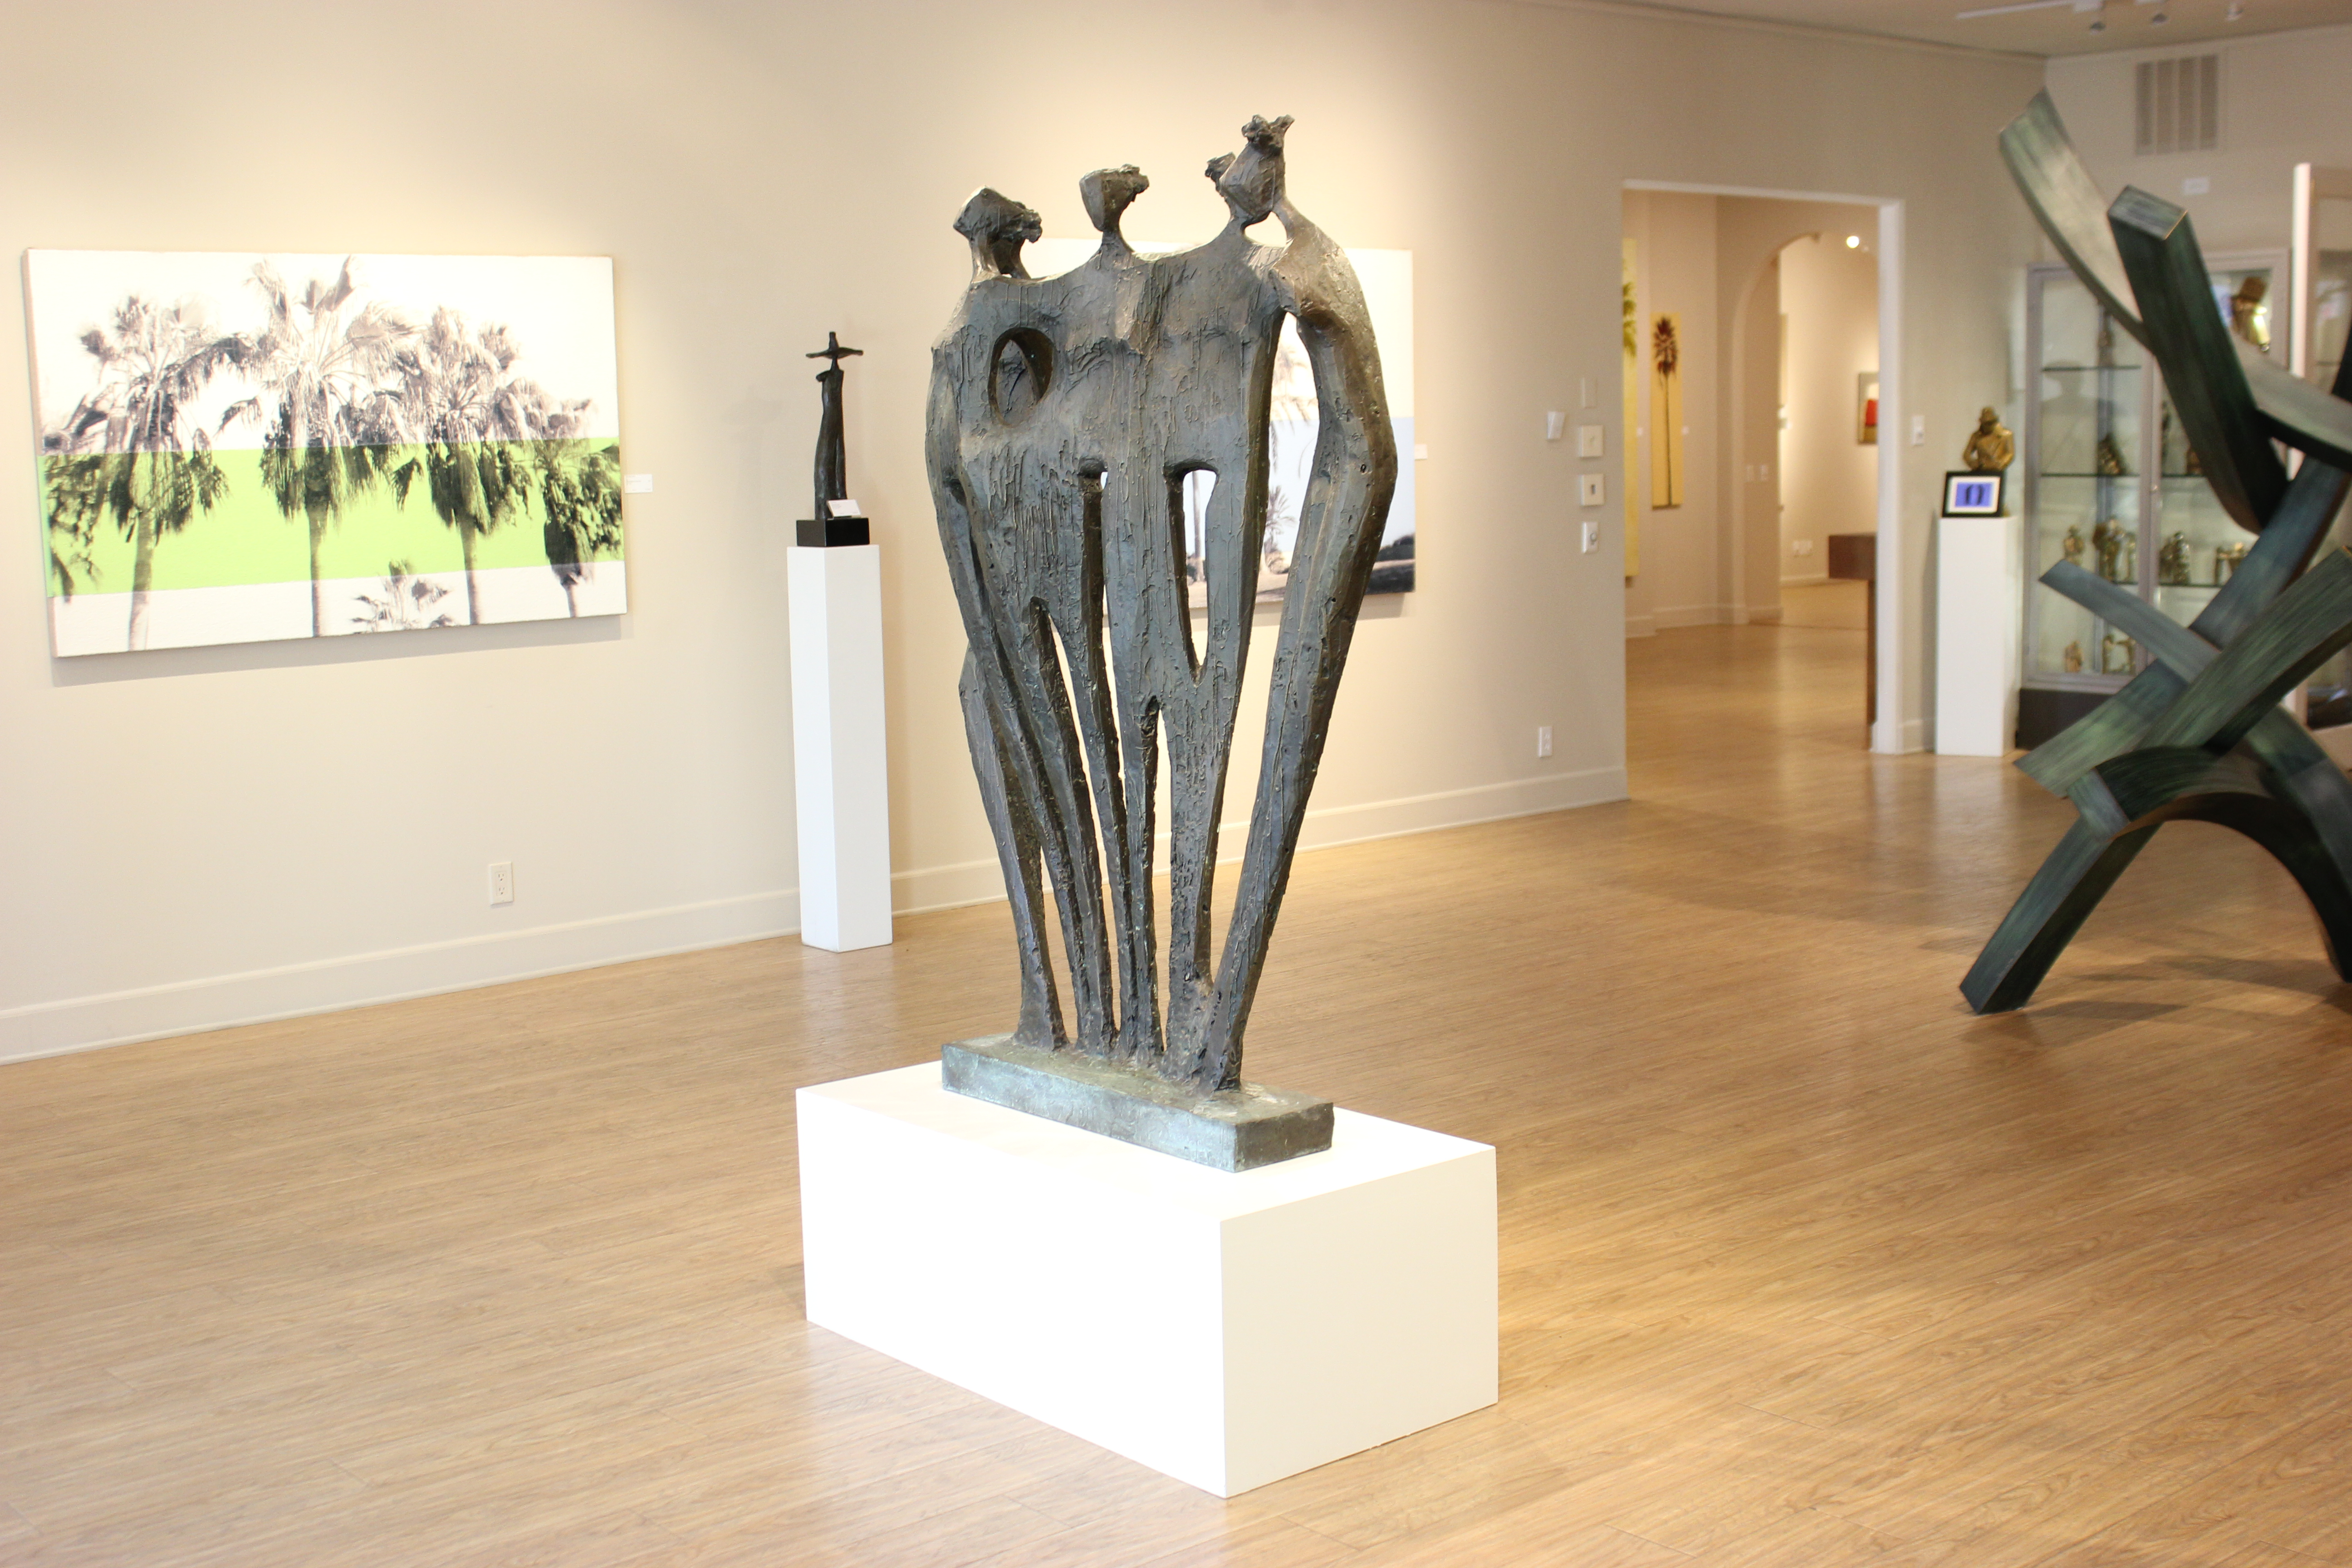 Family Group in Gallery (5)